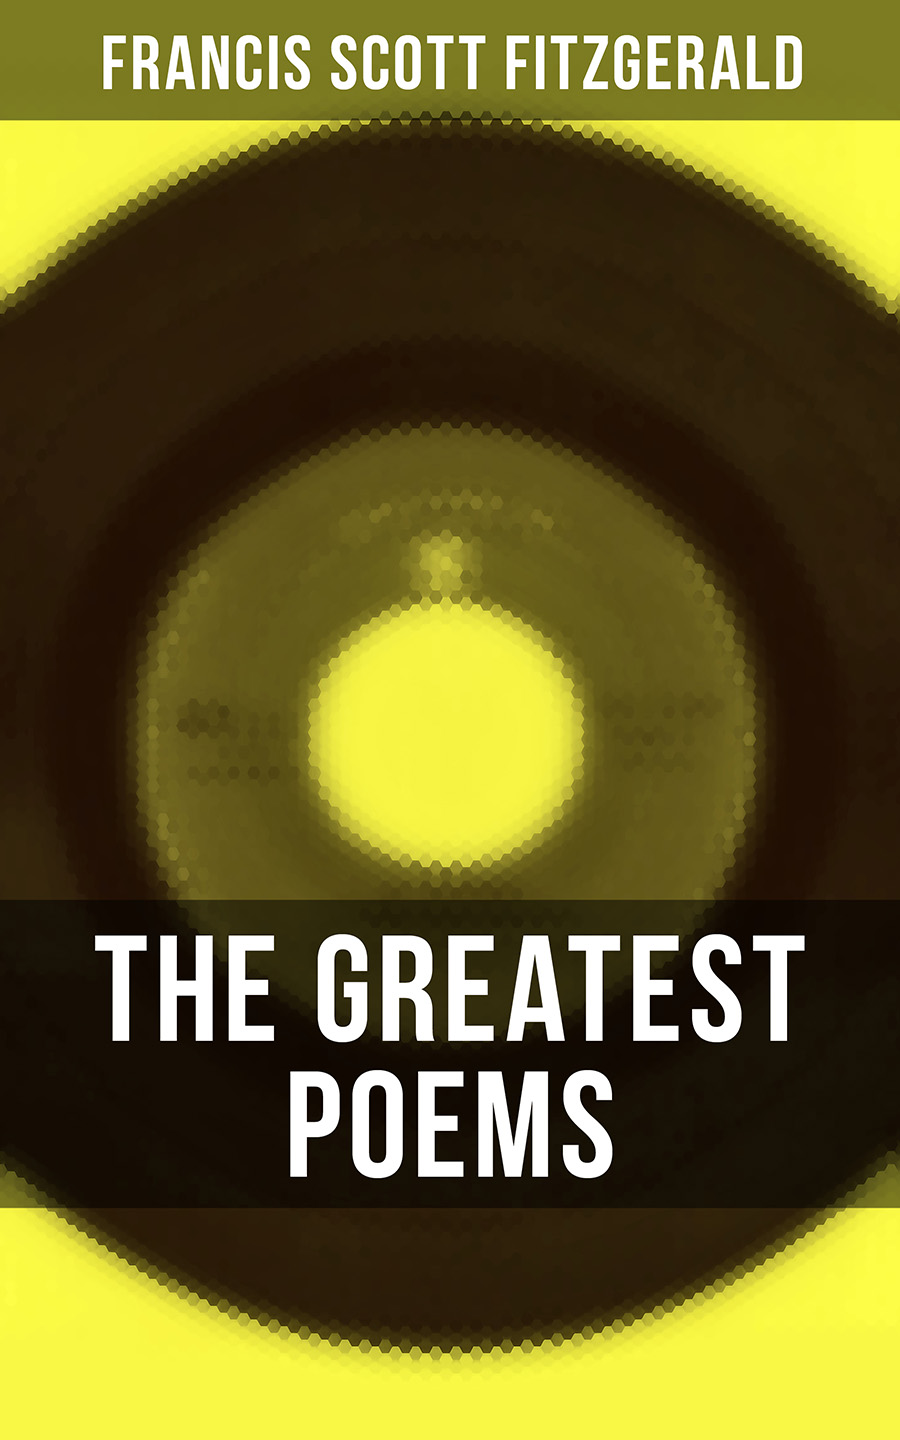 Fitzgerald,Francis Scott The Greatest Poems of F. Scott Fitzgerald fitzgerald francis scott tender is the night isbn 978 5 521 00165 1